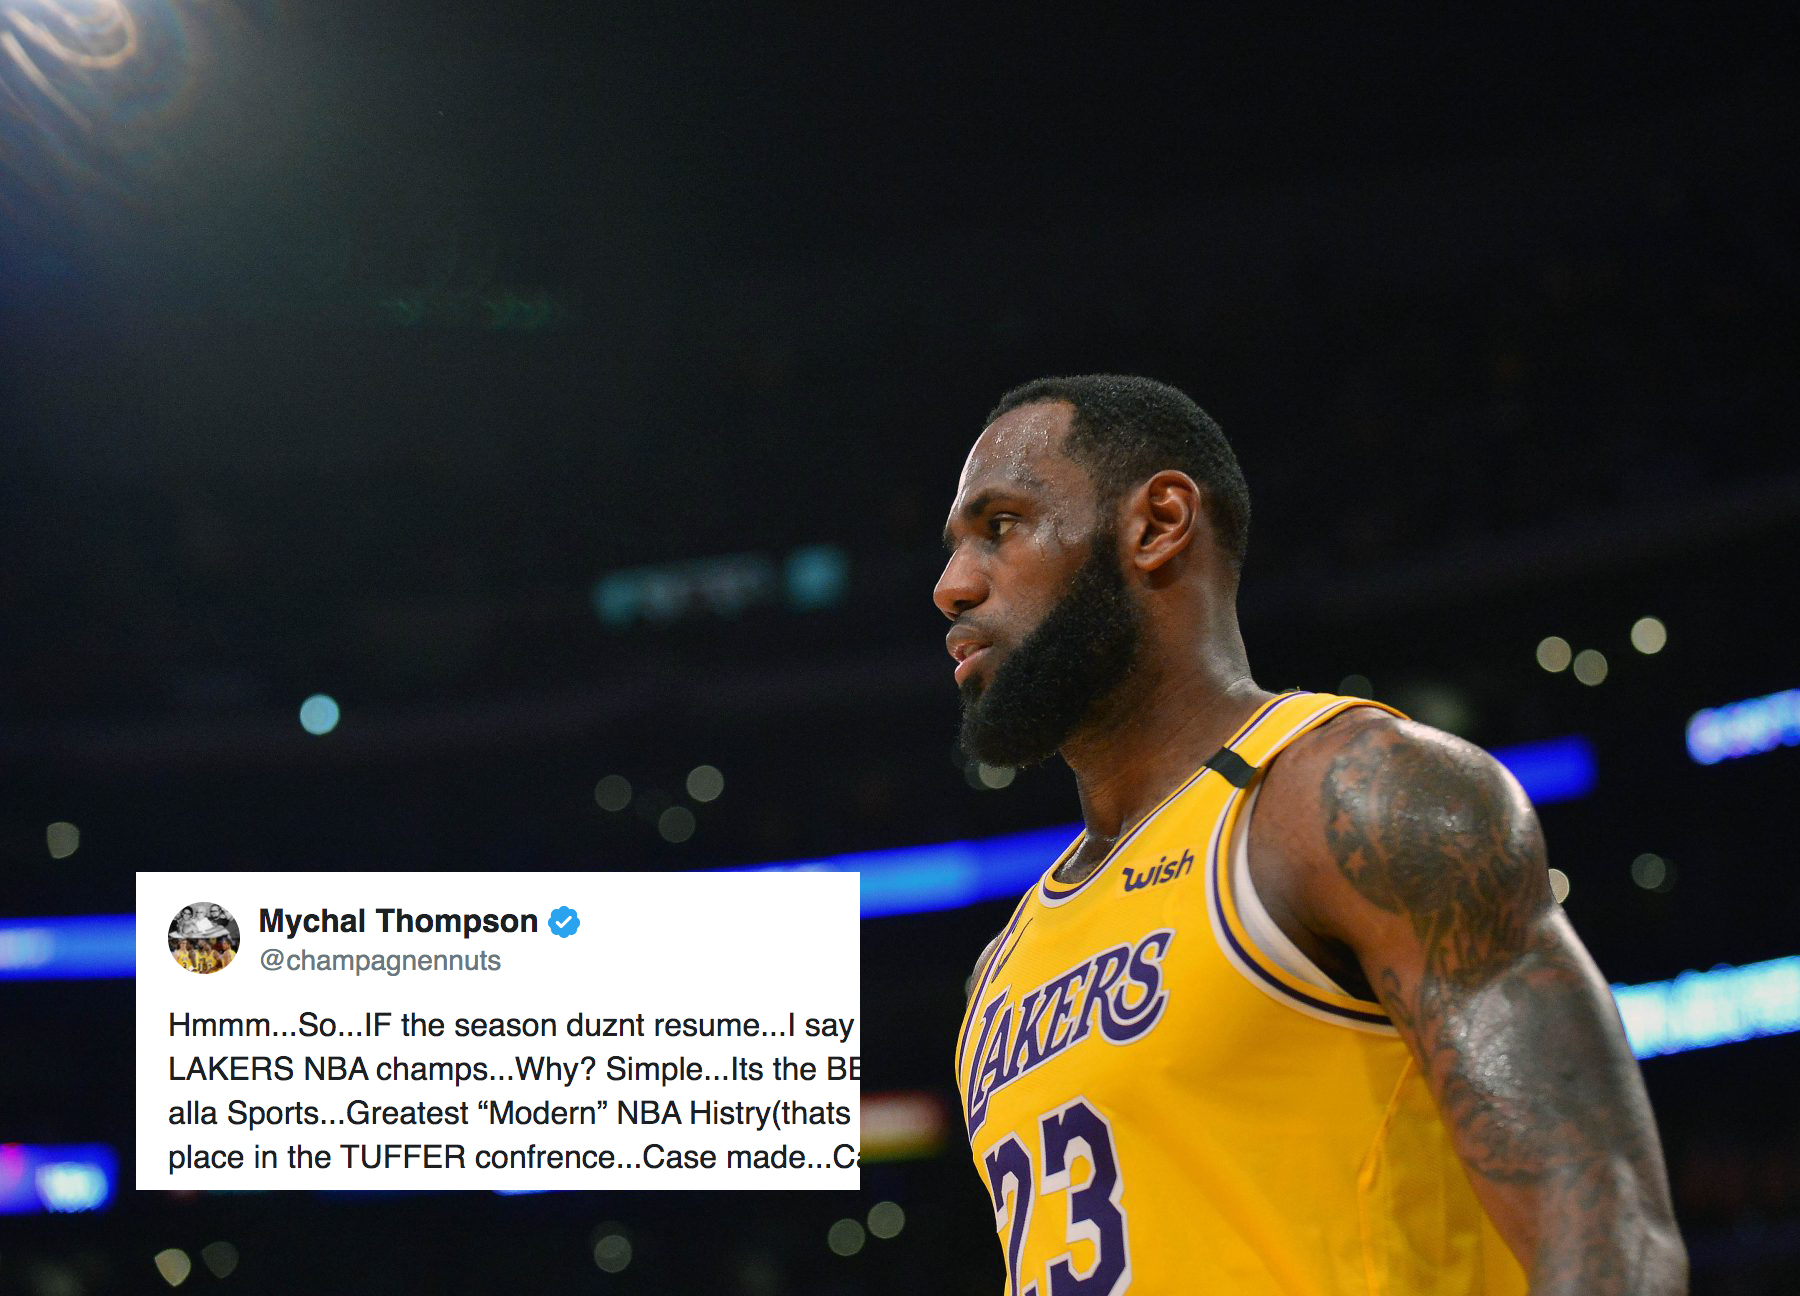 LeBron James, Steph Curry, Luka Doncic, others react to National Basketball Association suspending season